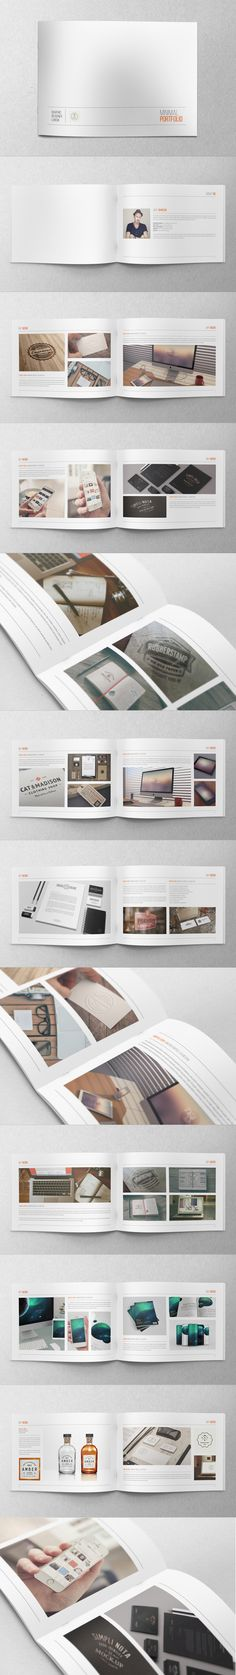 Minimal Hipster Design Portfolio by Abra Design, via Behance Portfolio Design, Portfolio Web, Portfolio Ideas, Portfolio Professional, Professional Resume, Graphisches Design, Book Design, Layout Design, Hipster Design